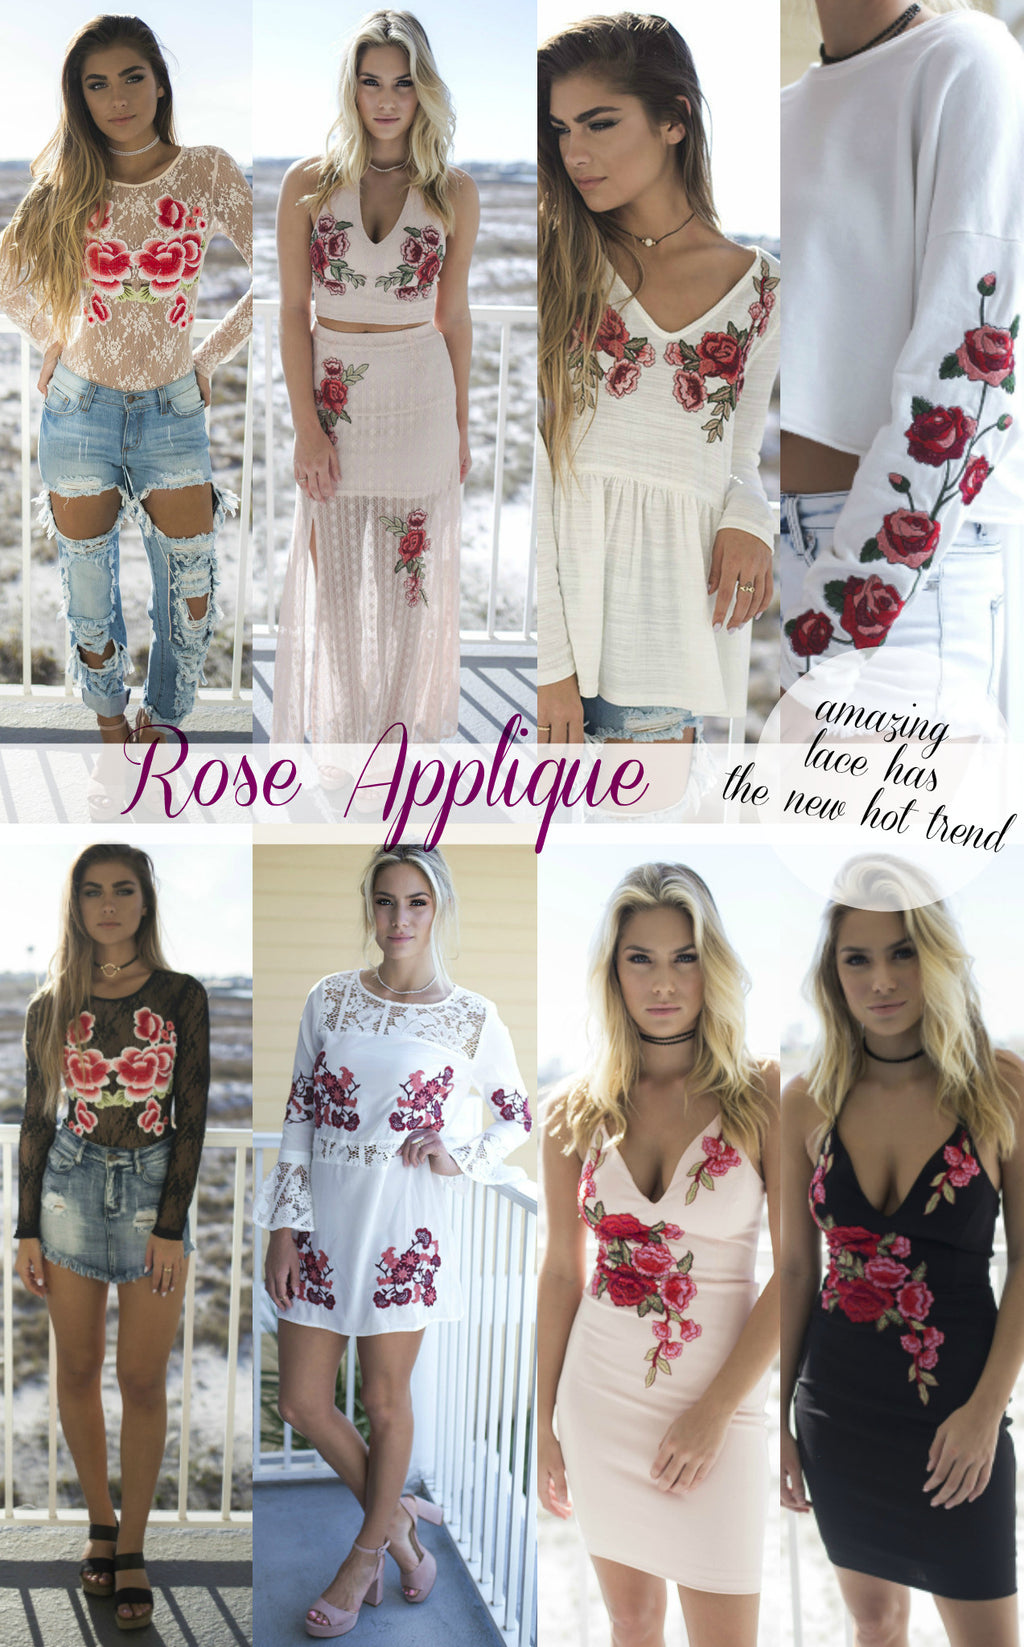 A New Hot Trend: Rose Applique